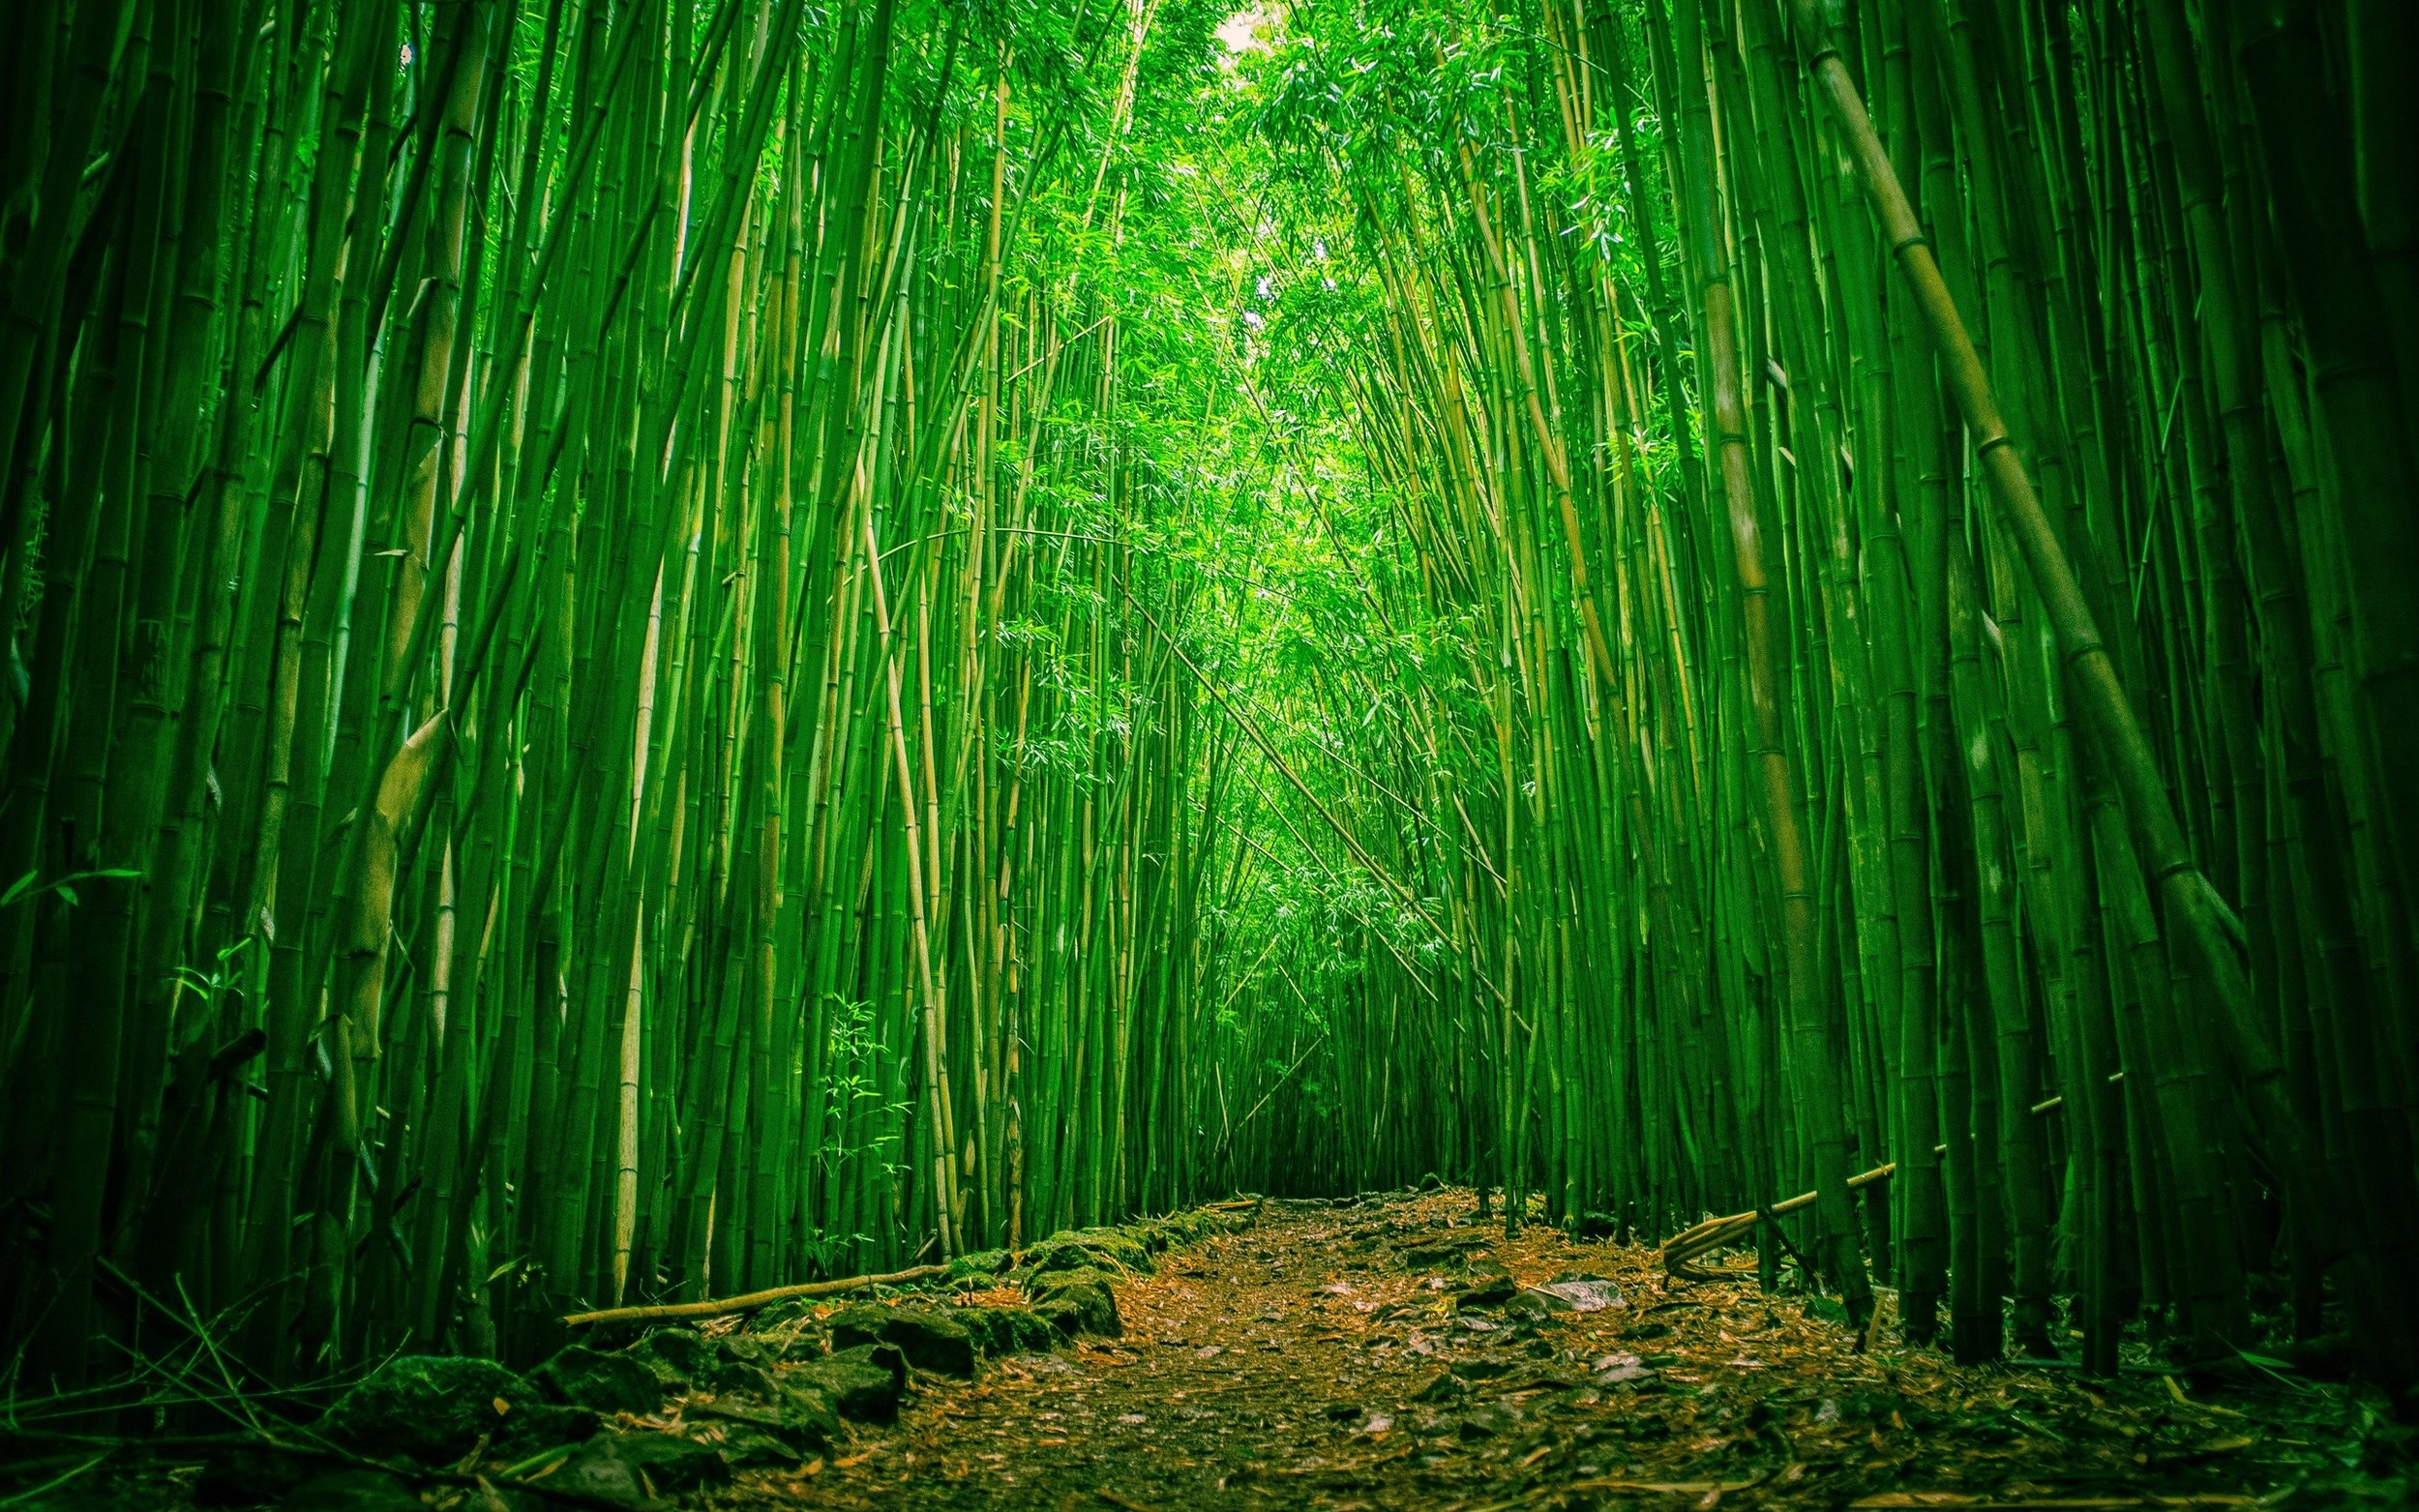 Bamboo-Forest-Wallpaper-Photos.jpg